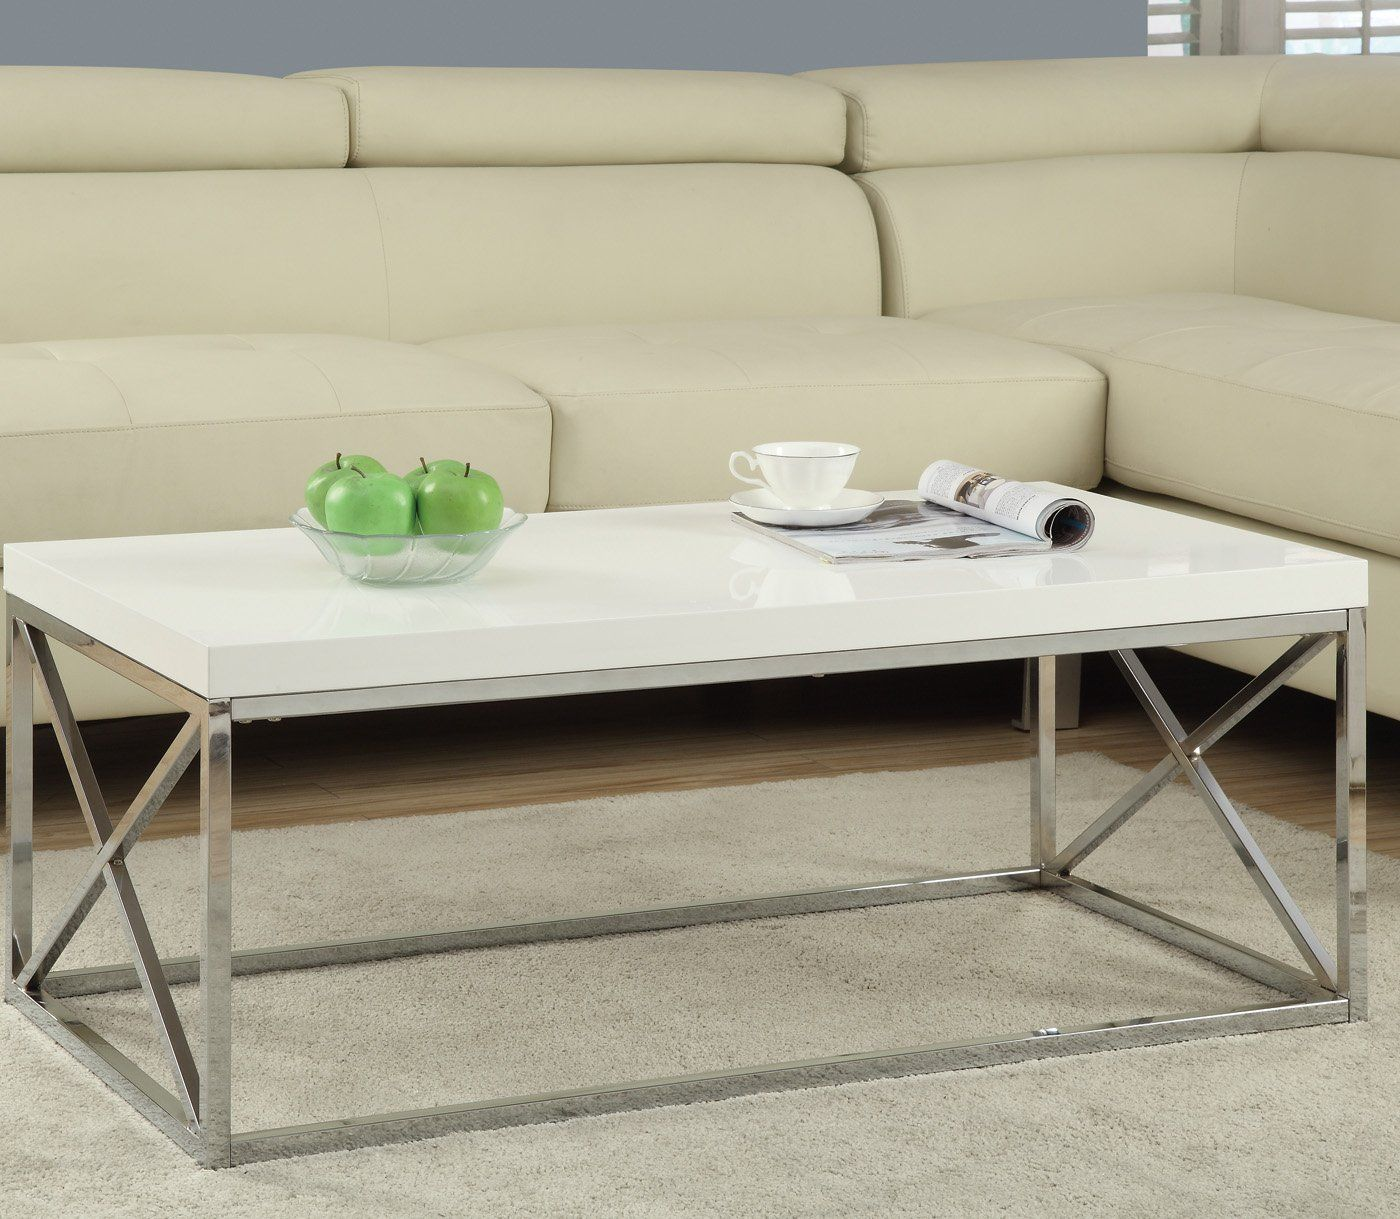 Amazon Com Monarch Metal Cocktail Table Glossy White Chrome Coffee Tables Living Room Coffee Table Cool Coffee Tables Coffee Table [ 1219 x 1400 Pixel ]